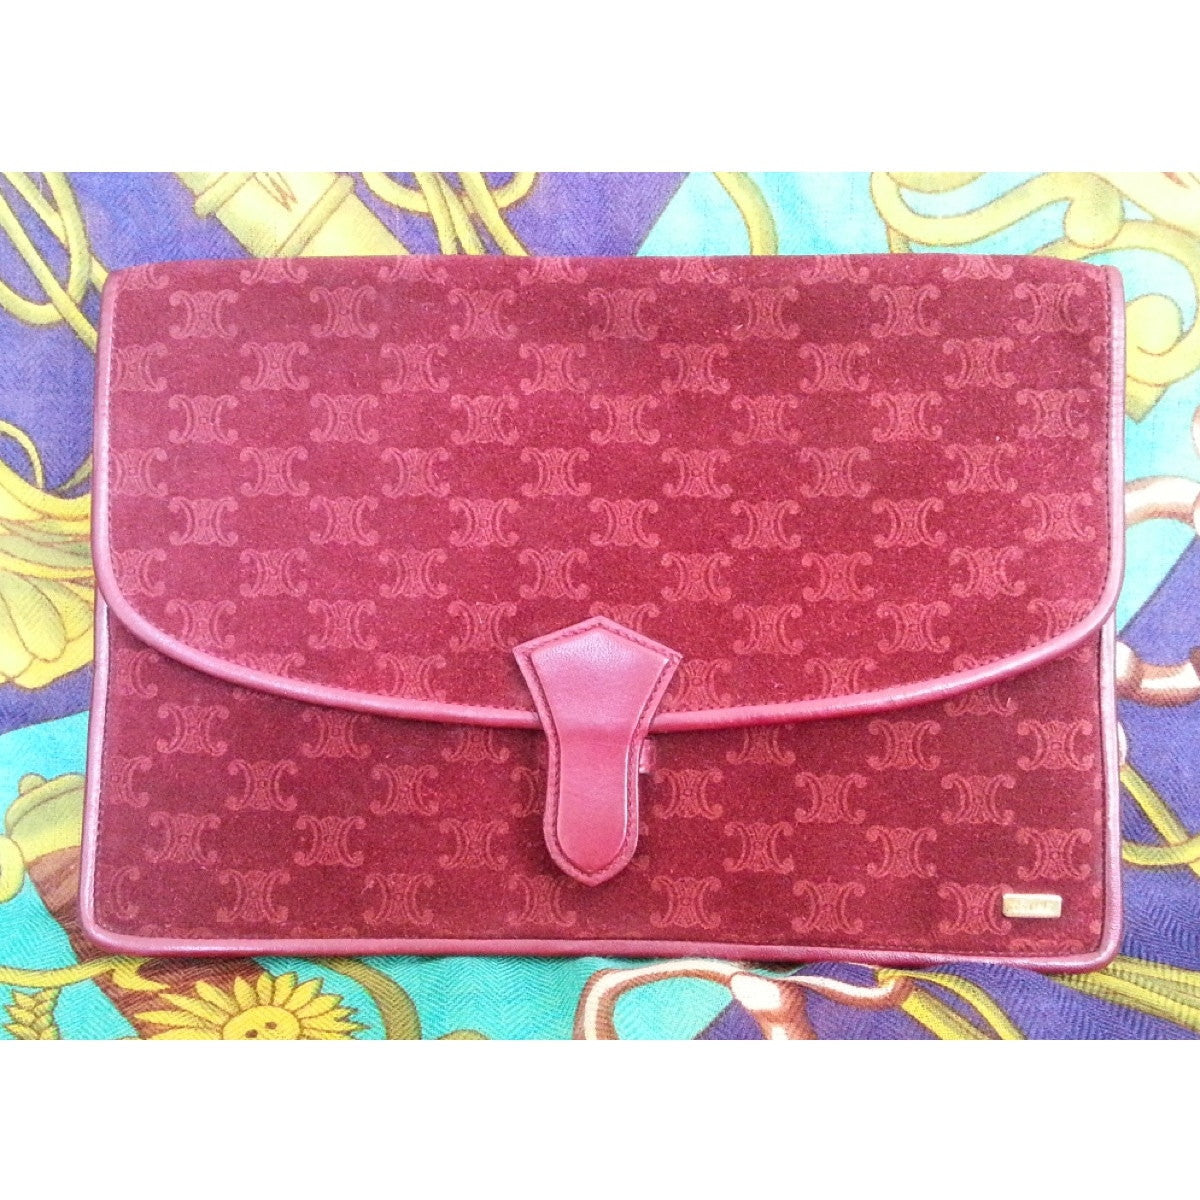 SOLD OUT: 80s vintage Celine clutch purse in wine suede leather with iconic logo print all over. Rare and sophisticated vintage from Celine.